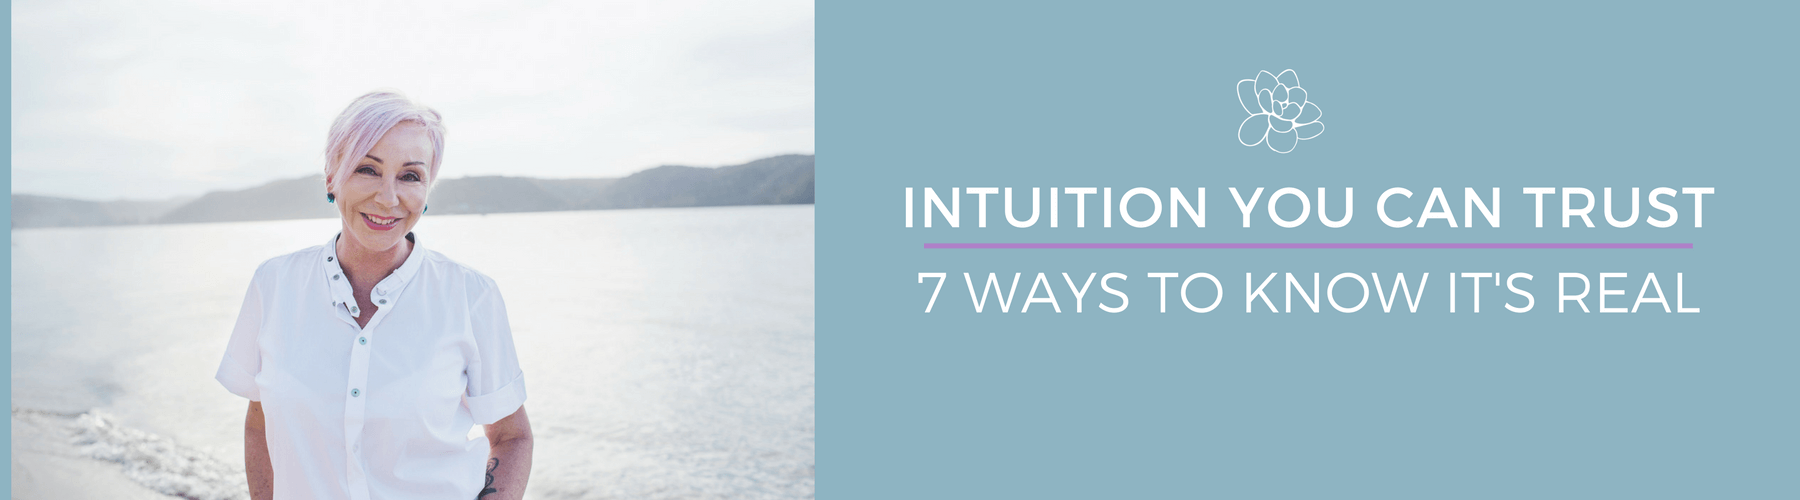 Intuition You Can Trust - 7 Ways to Know It's Real